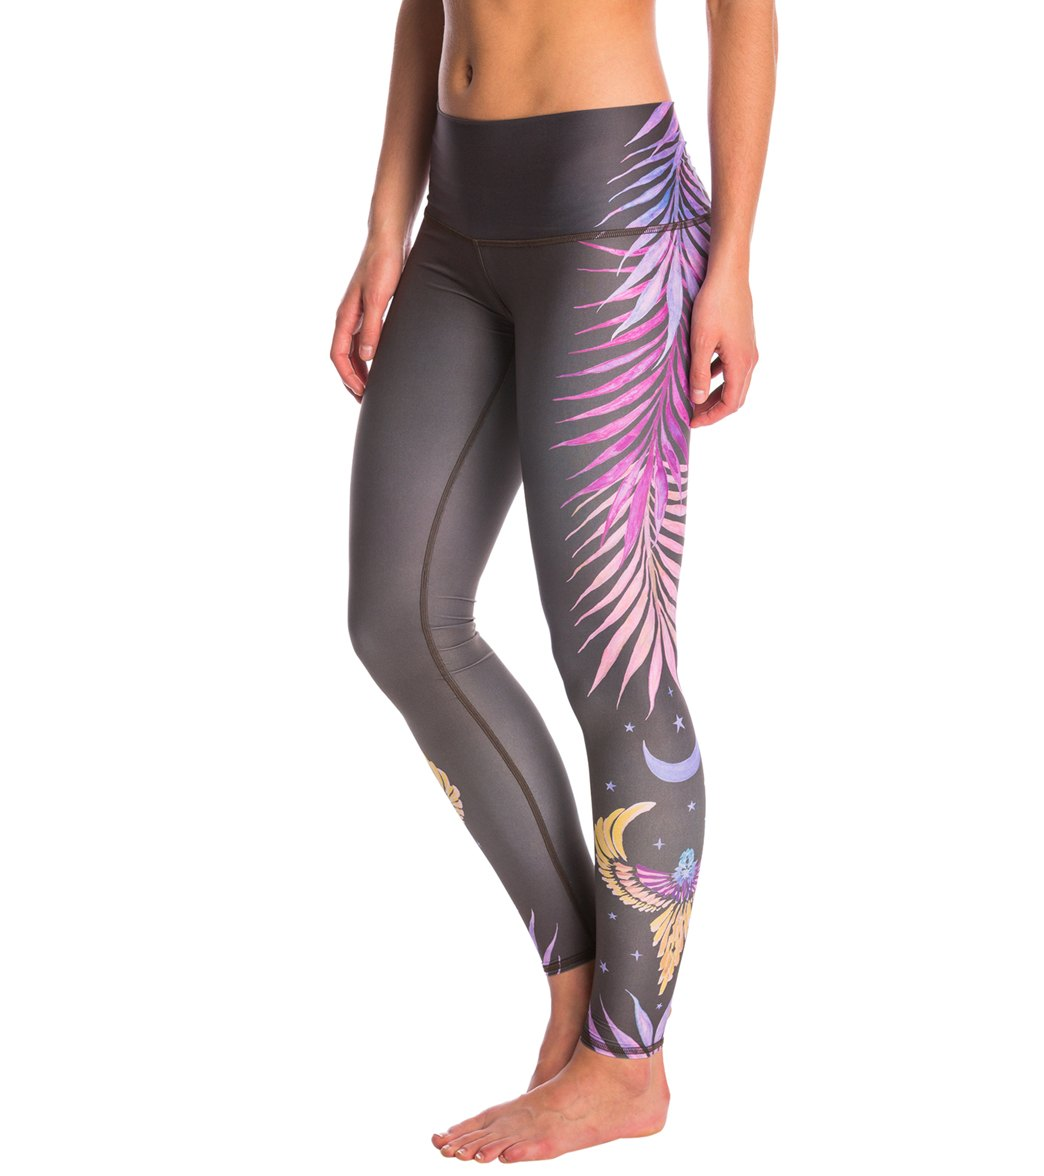 a87ea76d61fd0 Teeki Pheonix Rising Hot Pant Yoga Leggings at YogaOutlet.com - Free ...